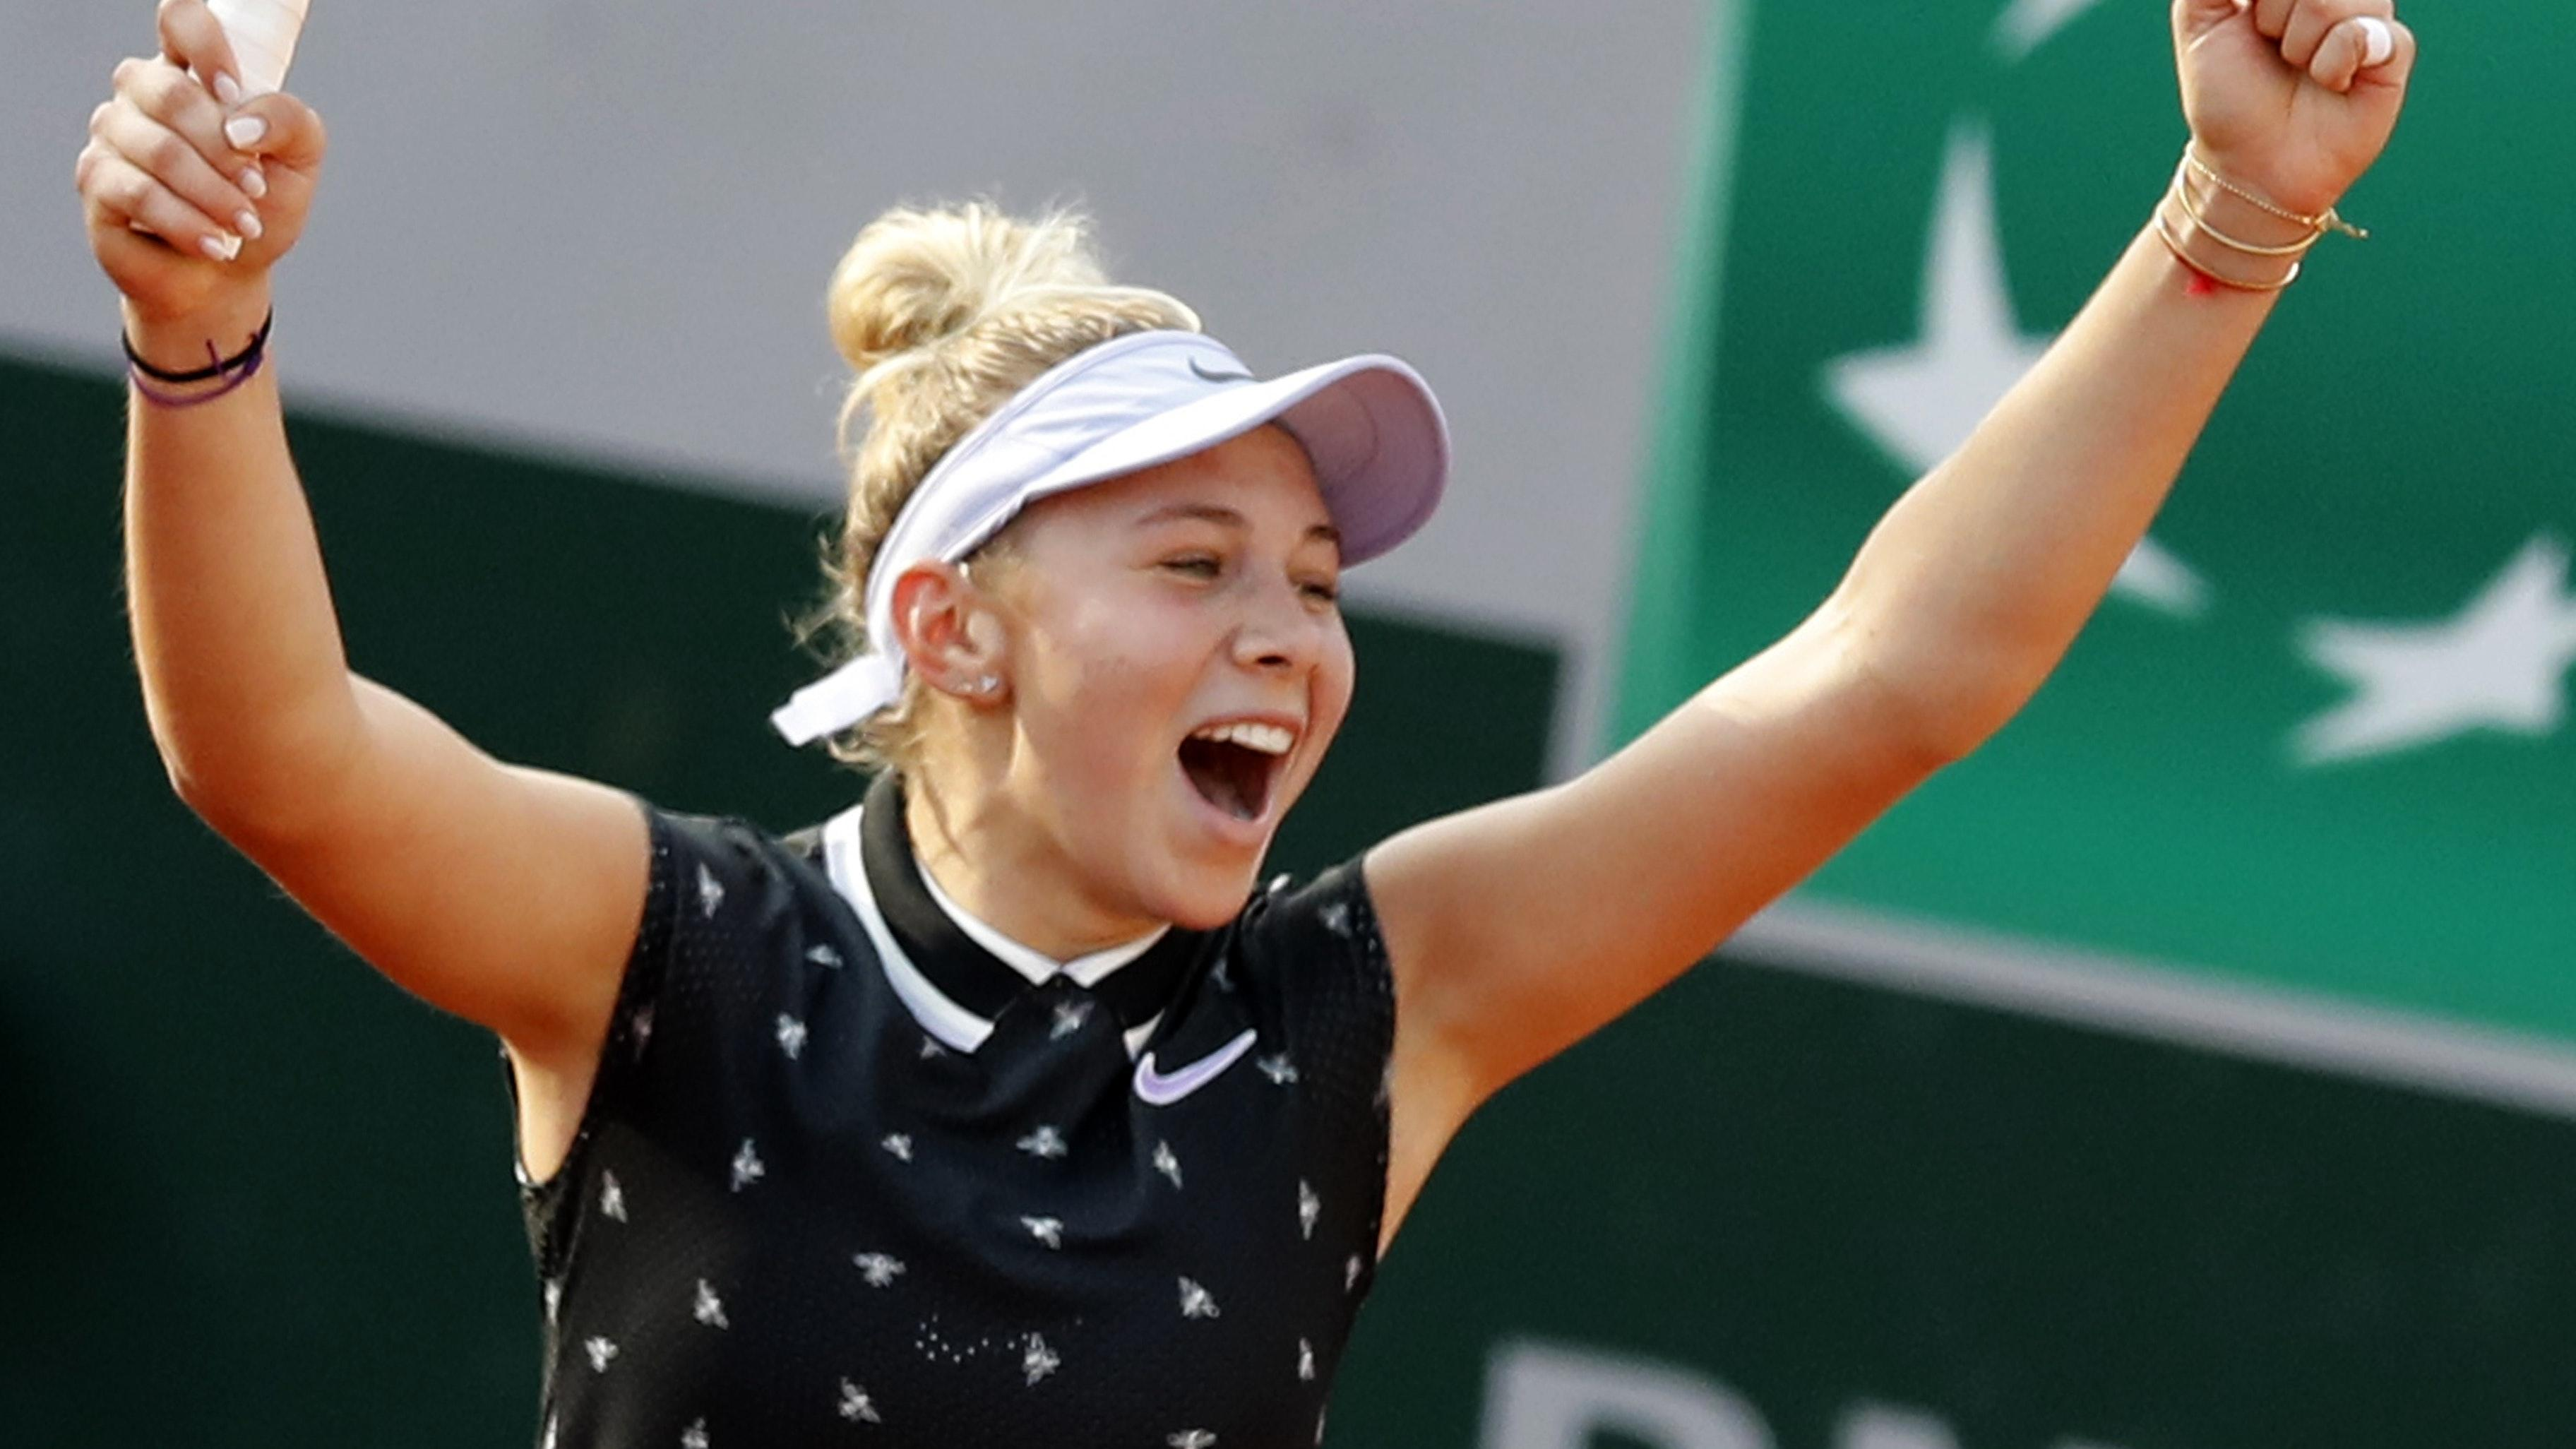 Simona Halep Eases Past Iga Swiatek To Reach French Open Quarter Finals